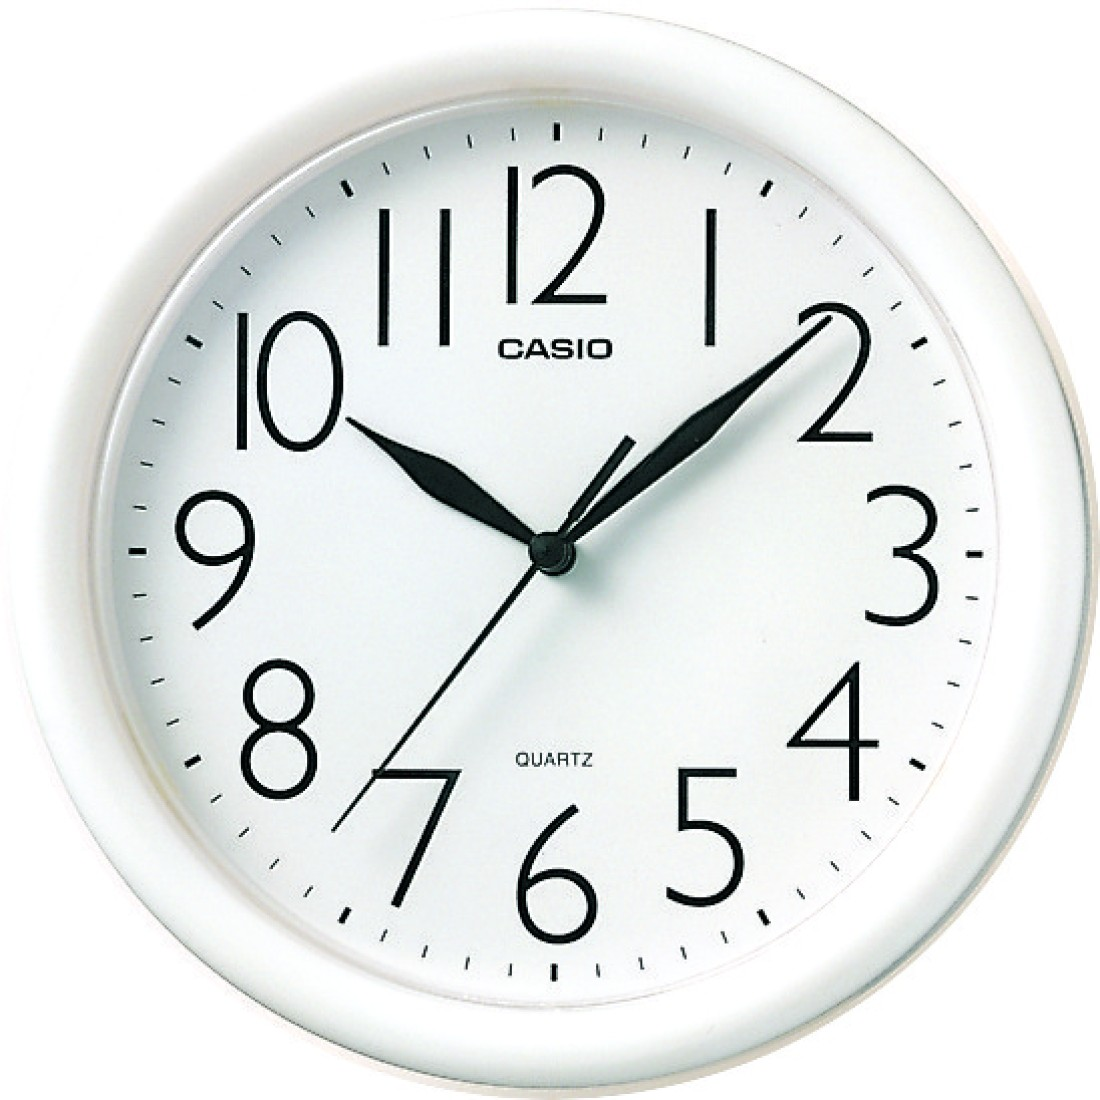 Casio wall clocks image collections home wall decoration ideas casio wall clocks gallery home wall decoration ideas casio wall clocks choice image home wall decoration amipublicfo Choice Image